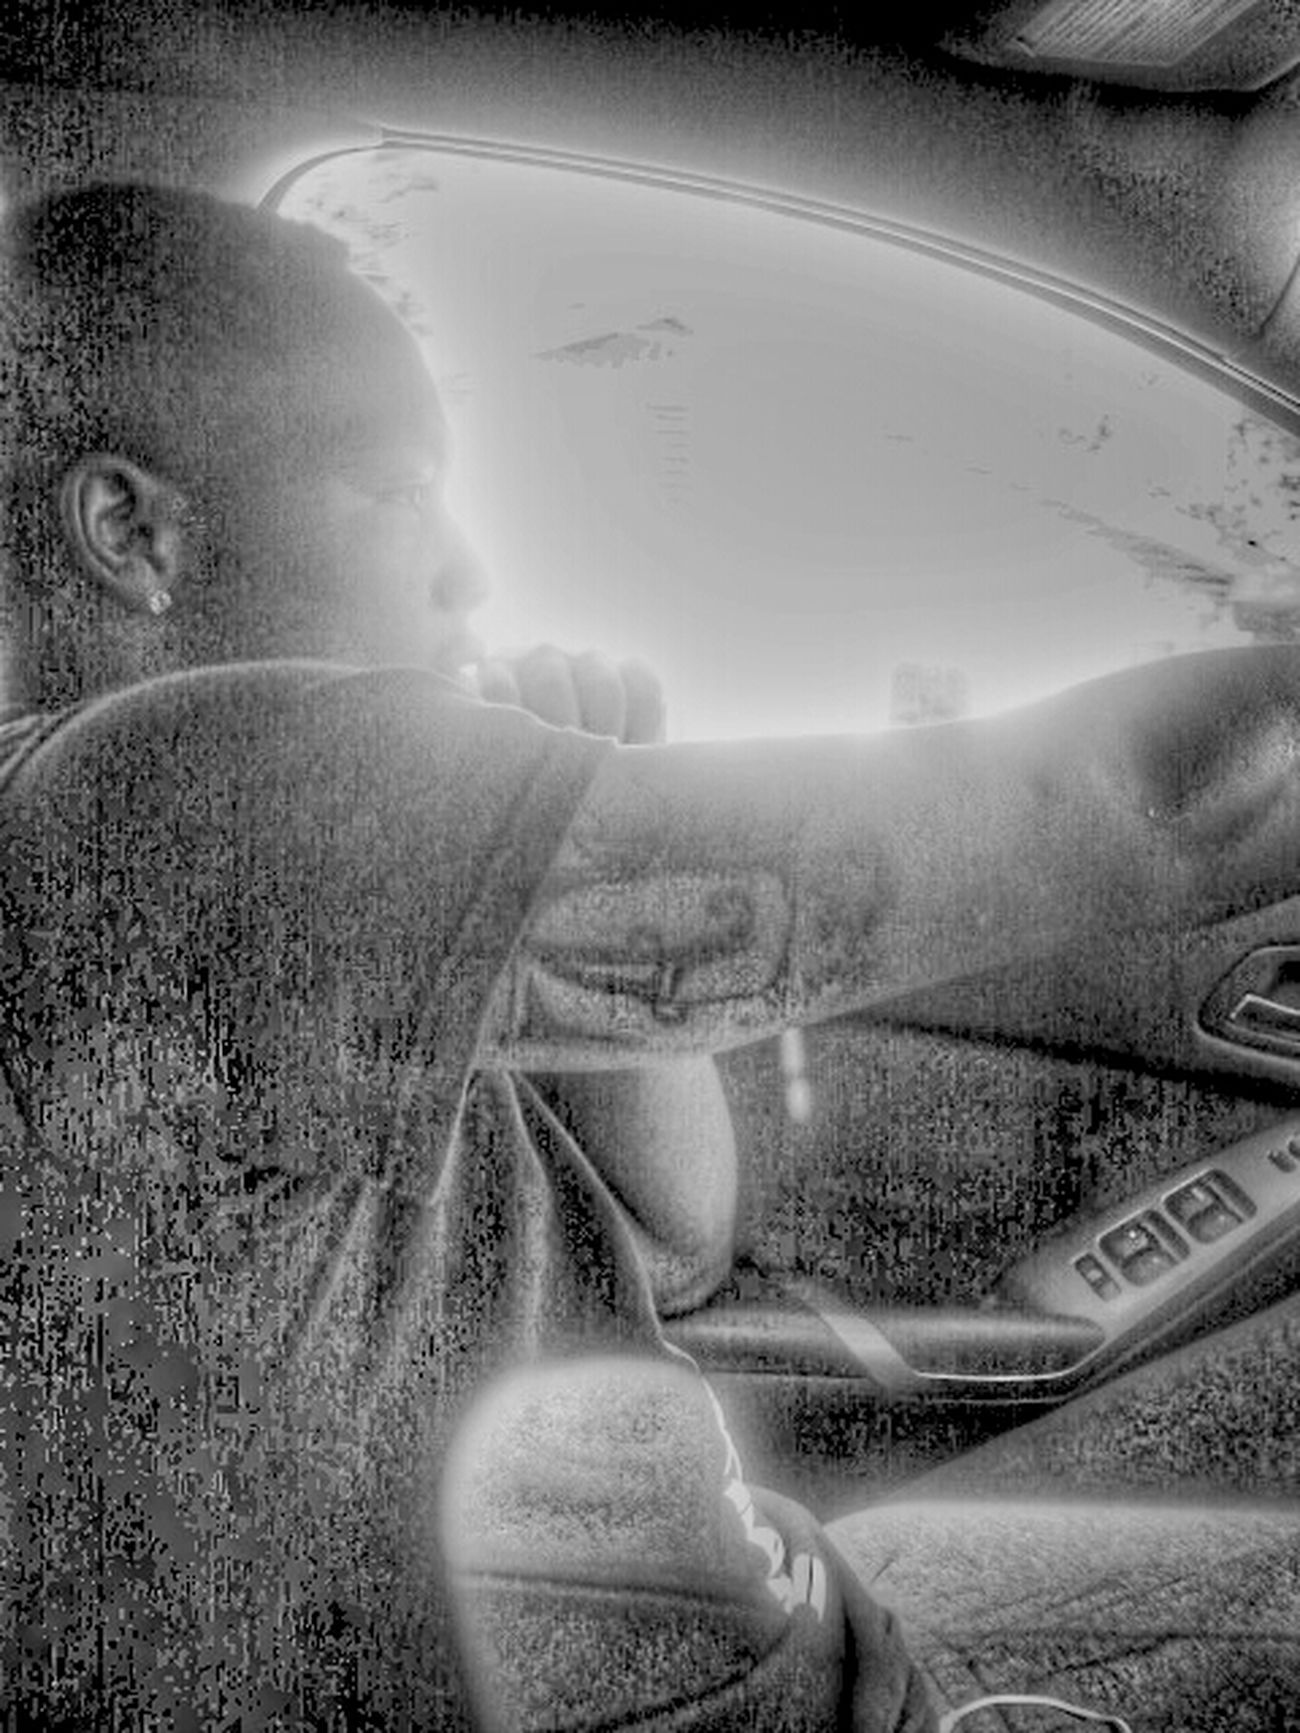 Riding Tatted @swayzandretti Tatts All On My Arm Thru Da Hood Sweet Home Alabama Ride Wit Me